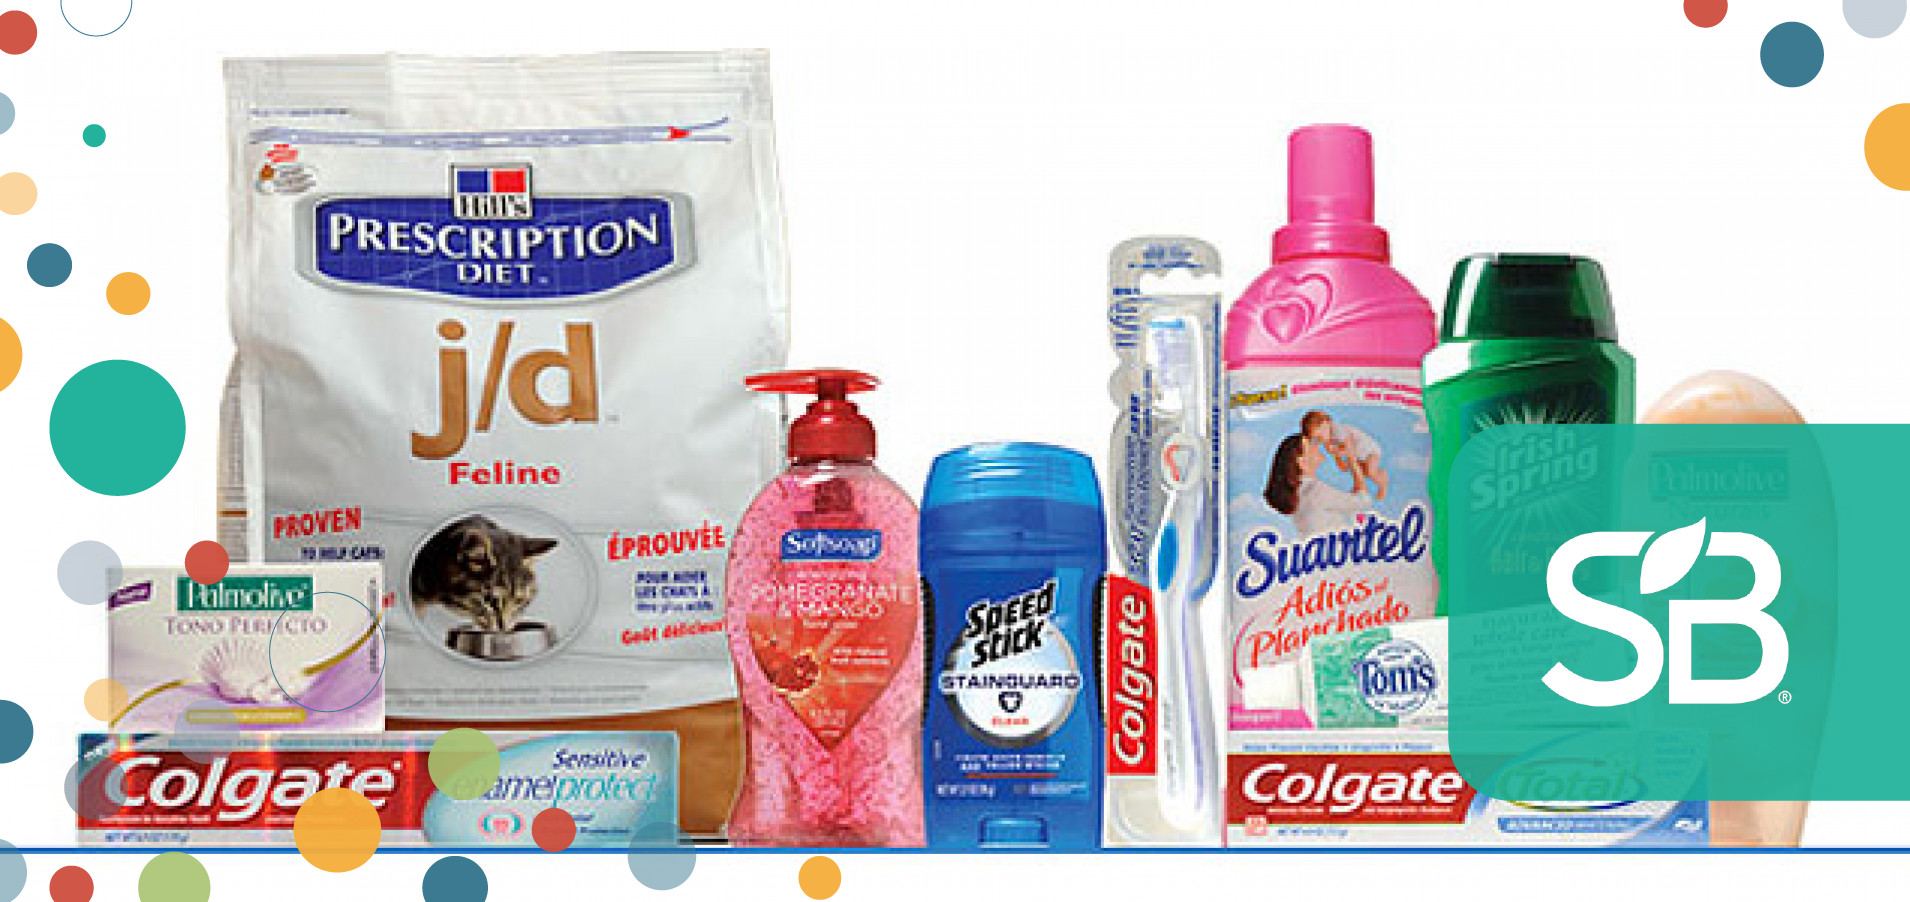 Colgate Commits to 100% Recyclable Packaging for Three of